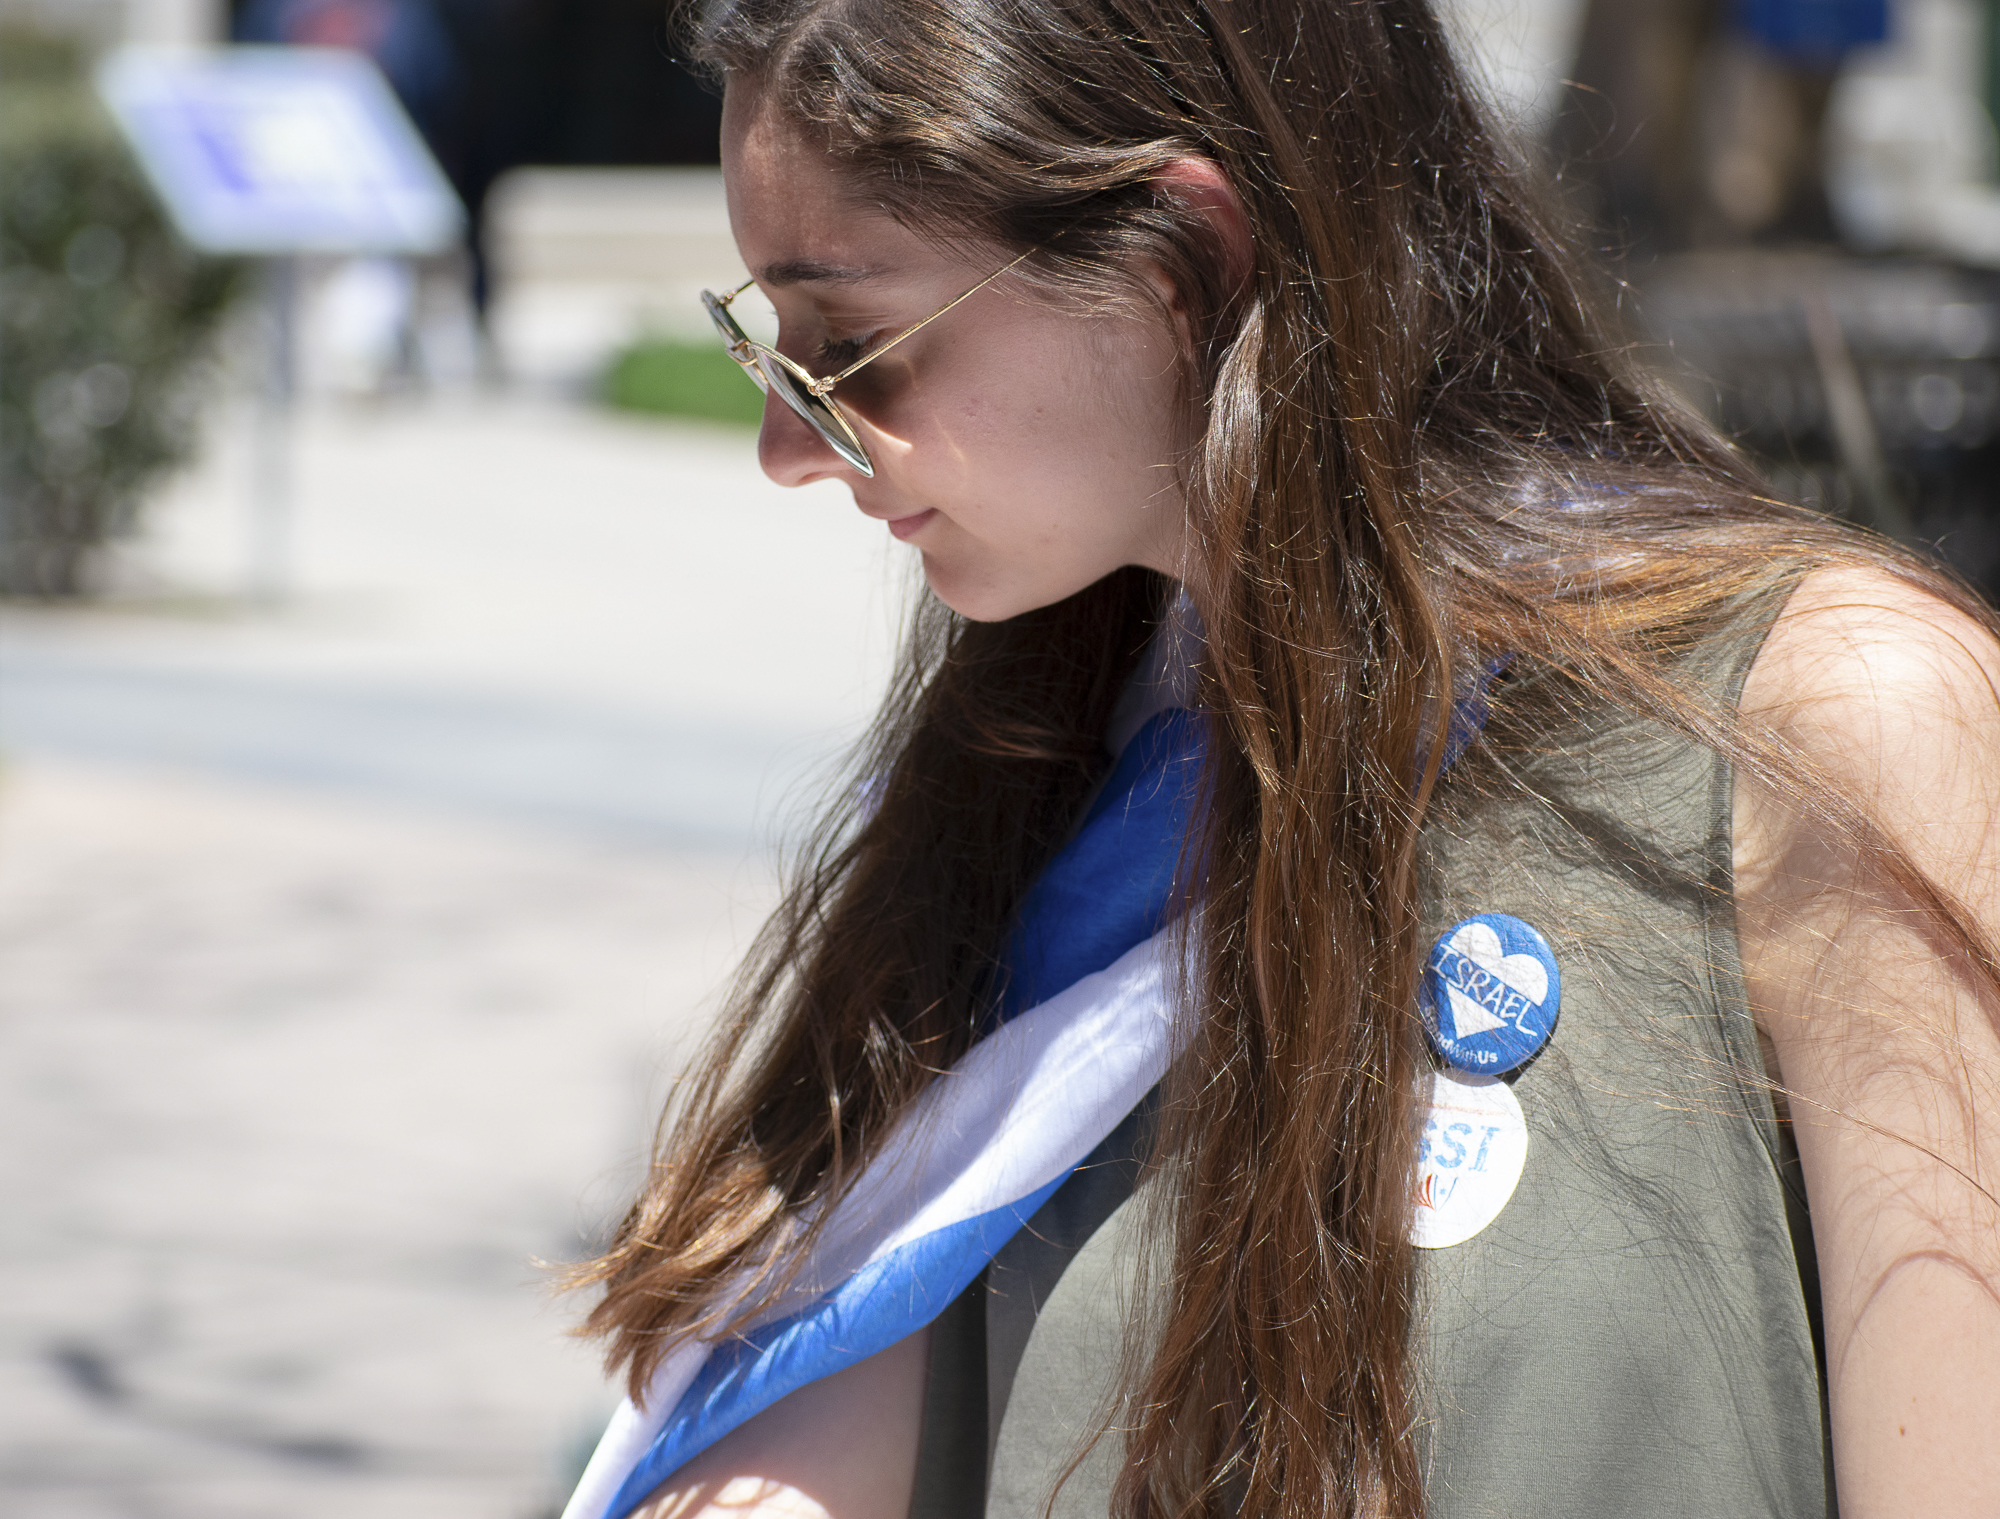 Shir Atias represents Students Supporting Israel on the quad at Santa Monica College during Club Row on Thursday, April 26, 2018 in Santa Monica, California. With over 60 clubs in attendance, the day is meant to encourage clubs to showcase what they've been doing over the semester for students. (Ethan Lauren/Corsair Photo)